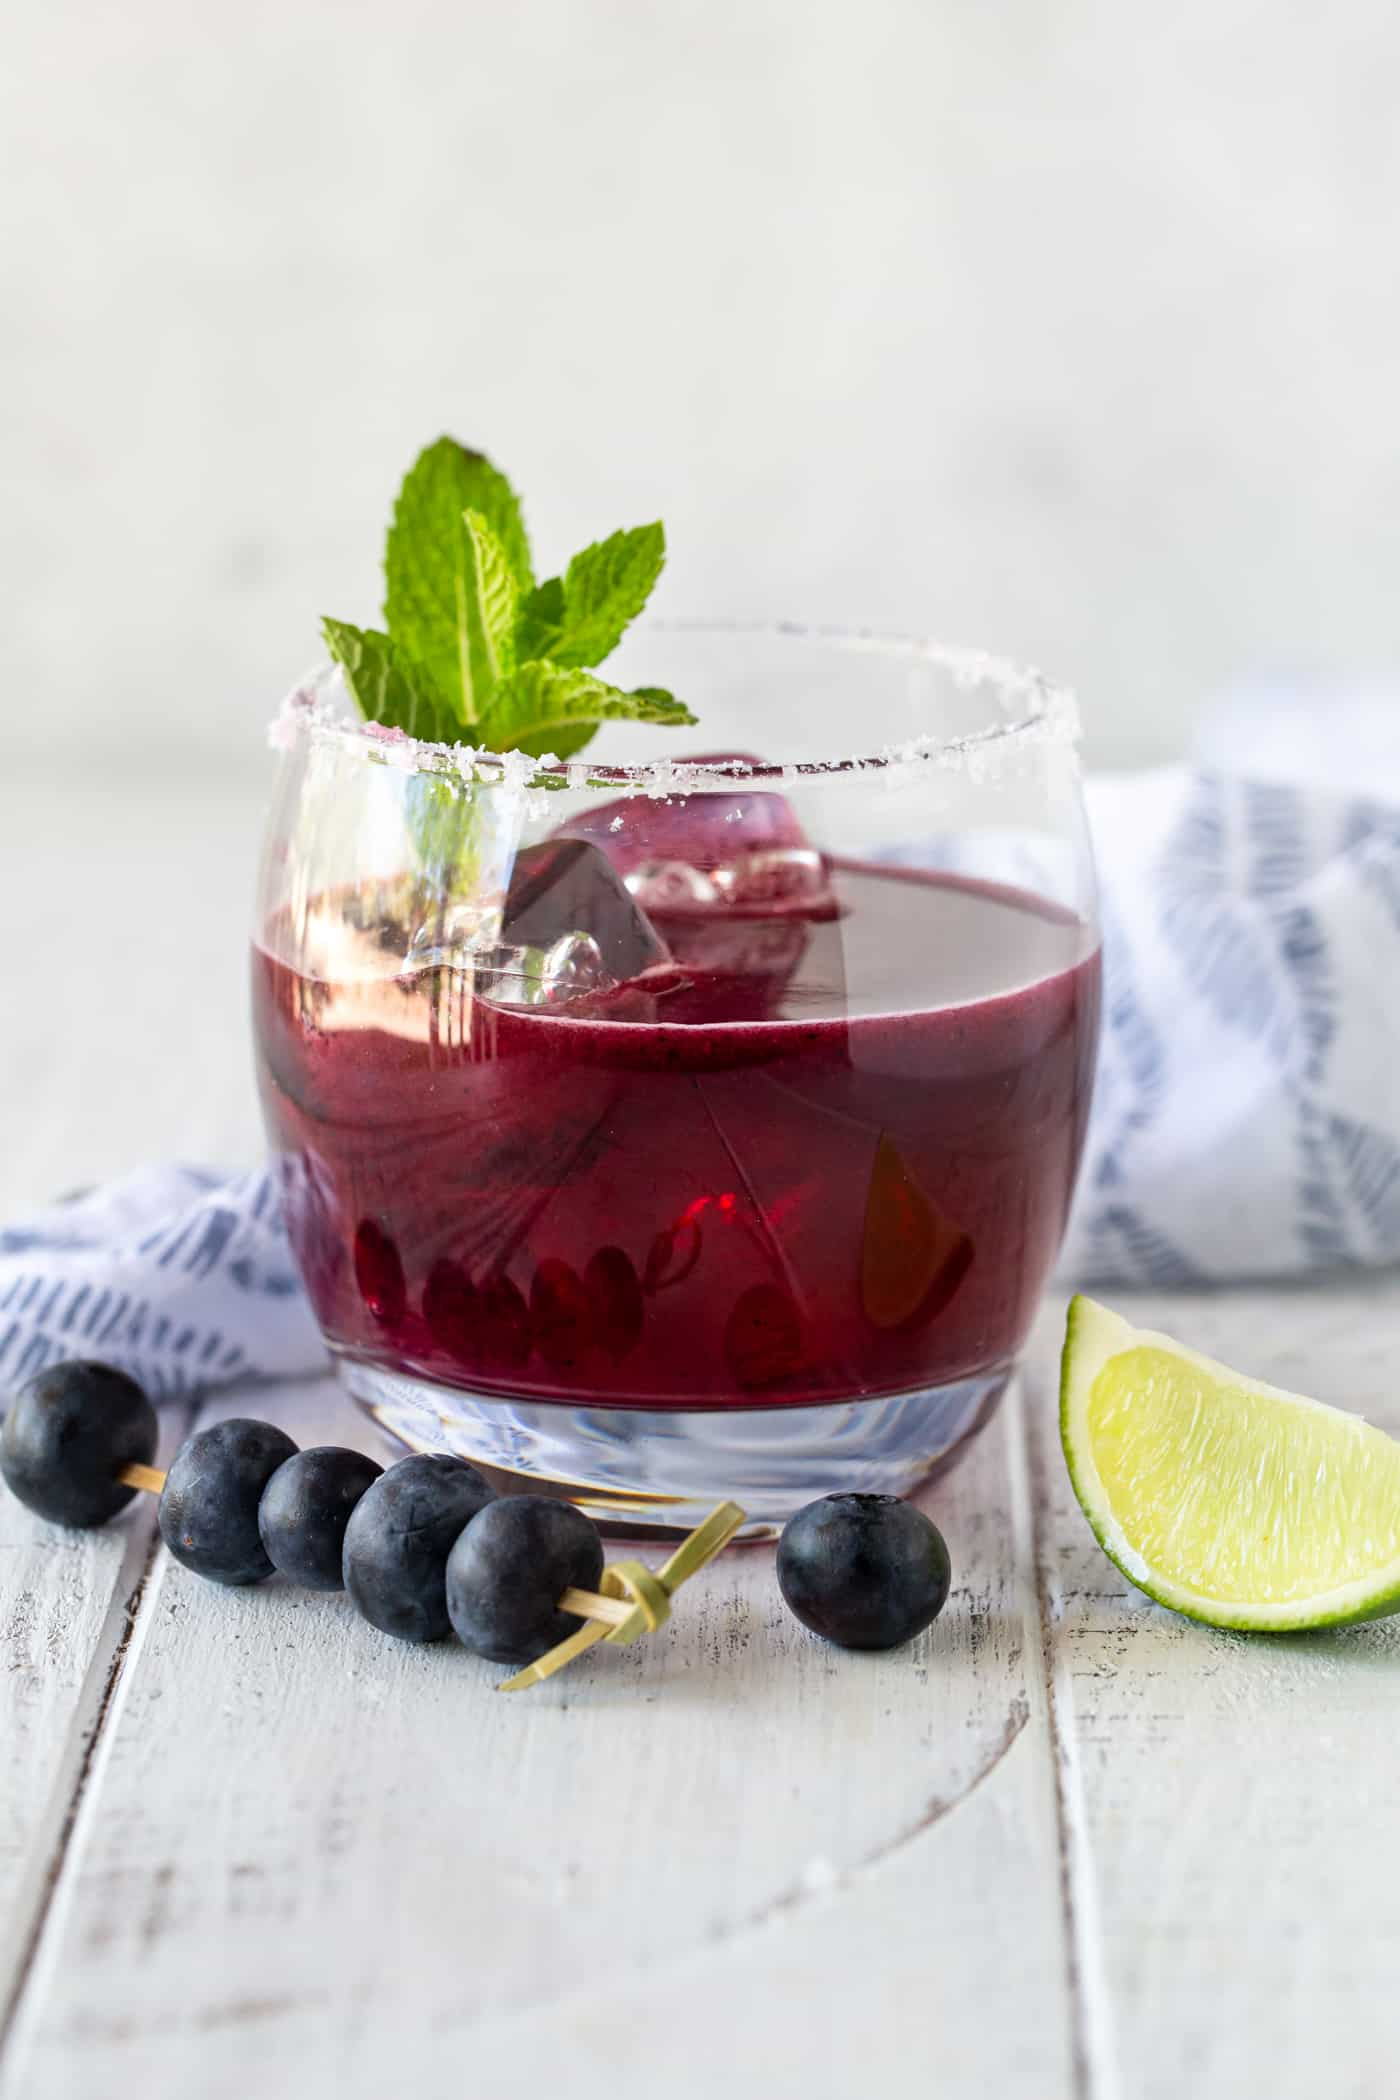 Single low ball glass rimmed in salt and filled with ice a fresh blueberry margarita on a white background.